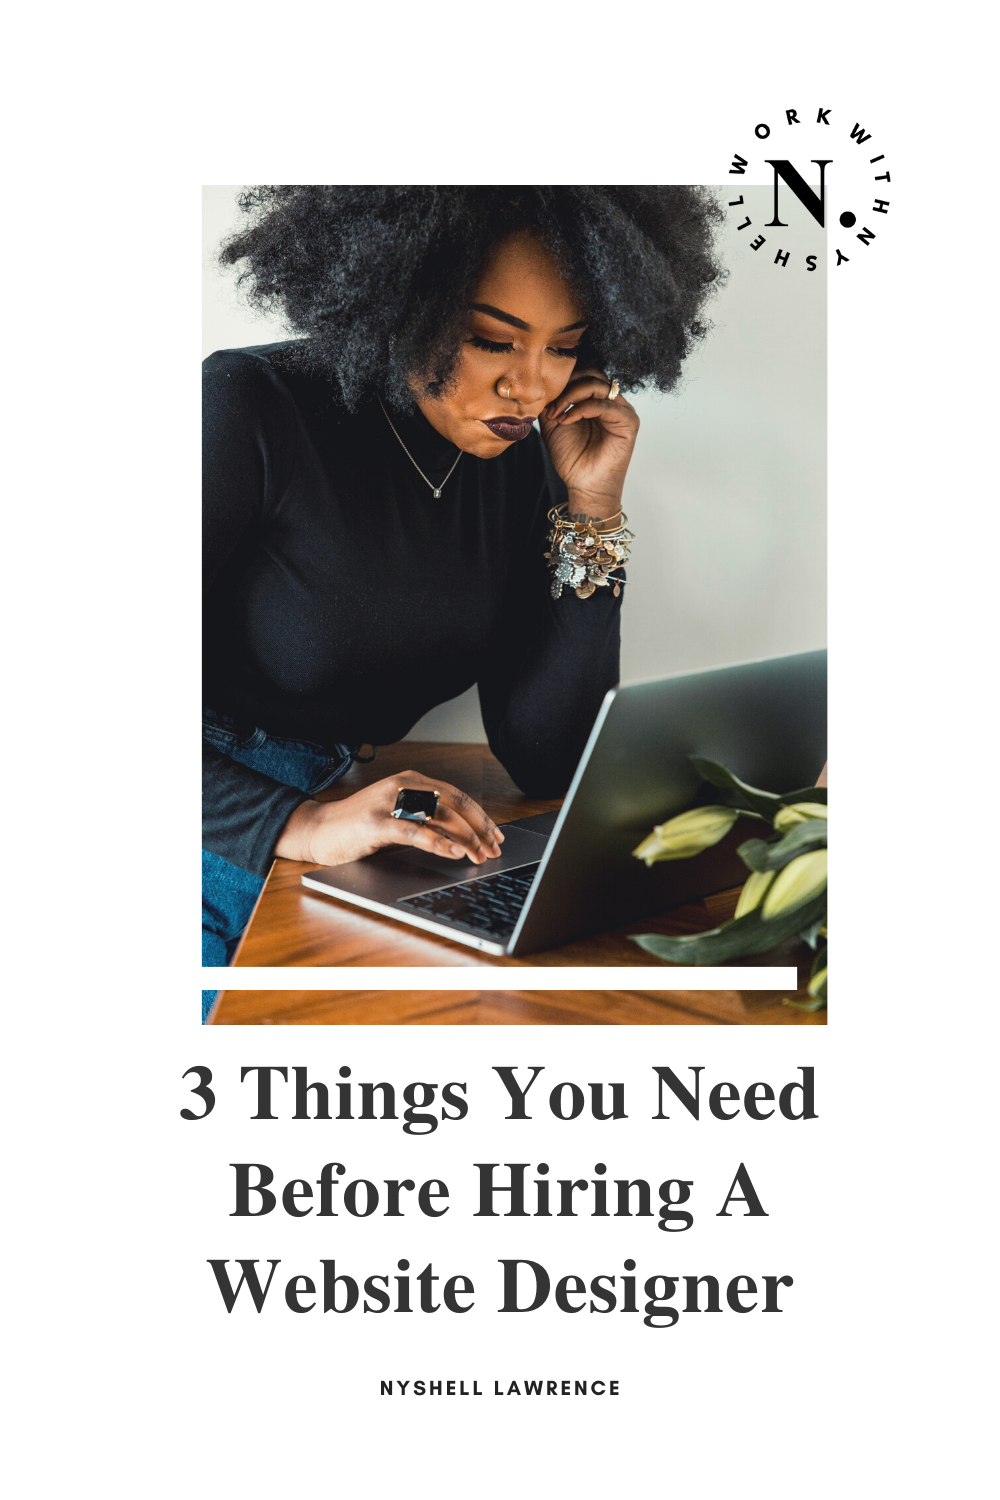 3 Things You Need Before Hiring A Website Designer